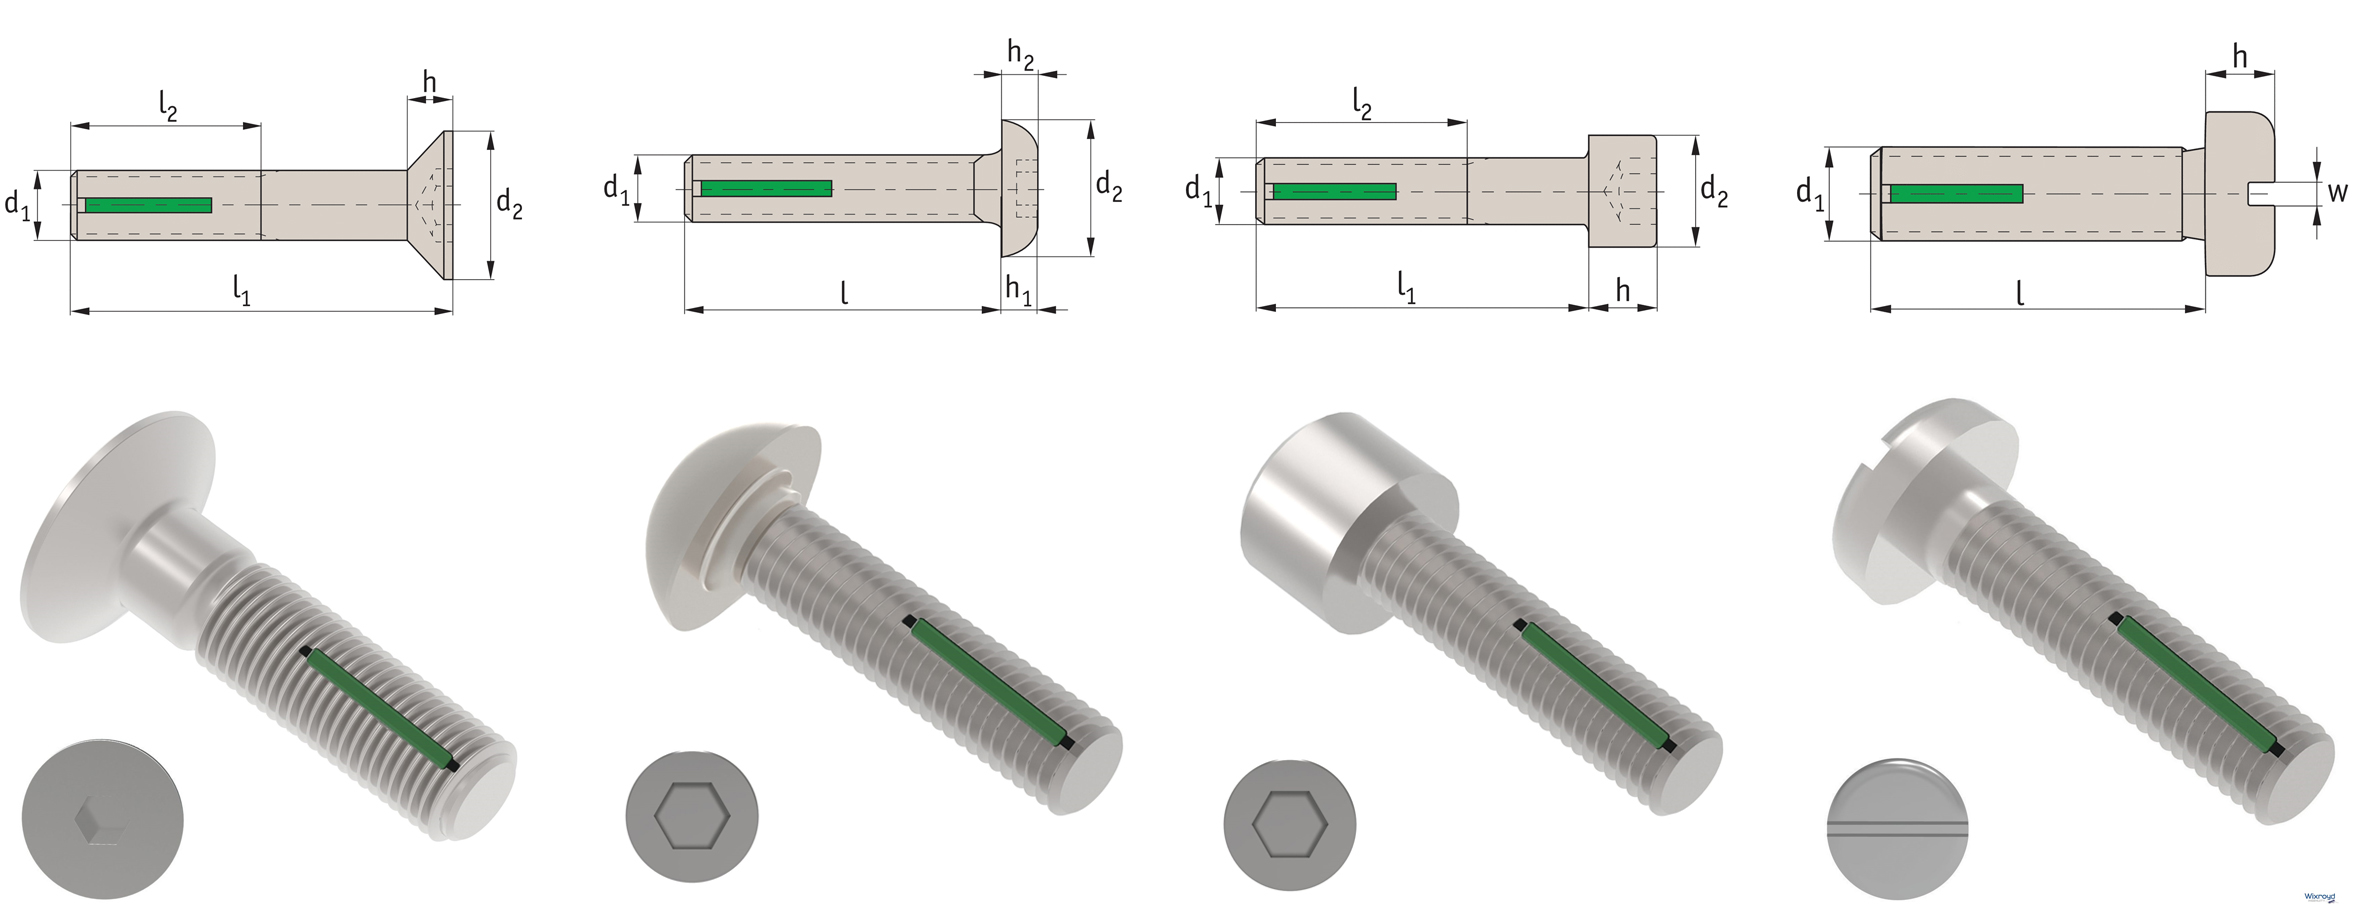 Automotion Self Locking Screws